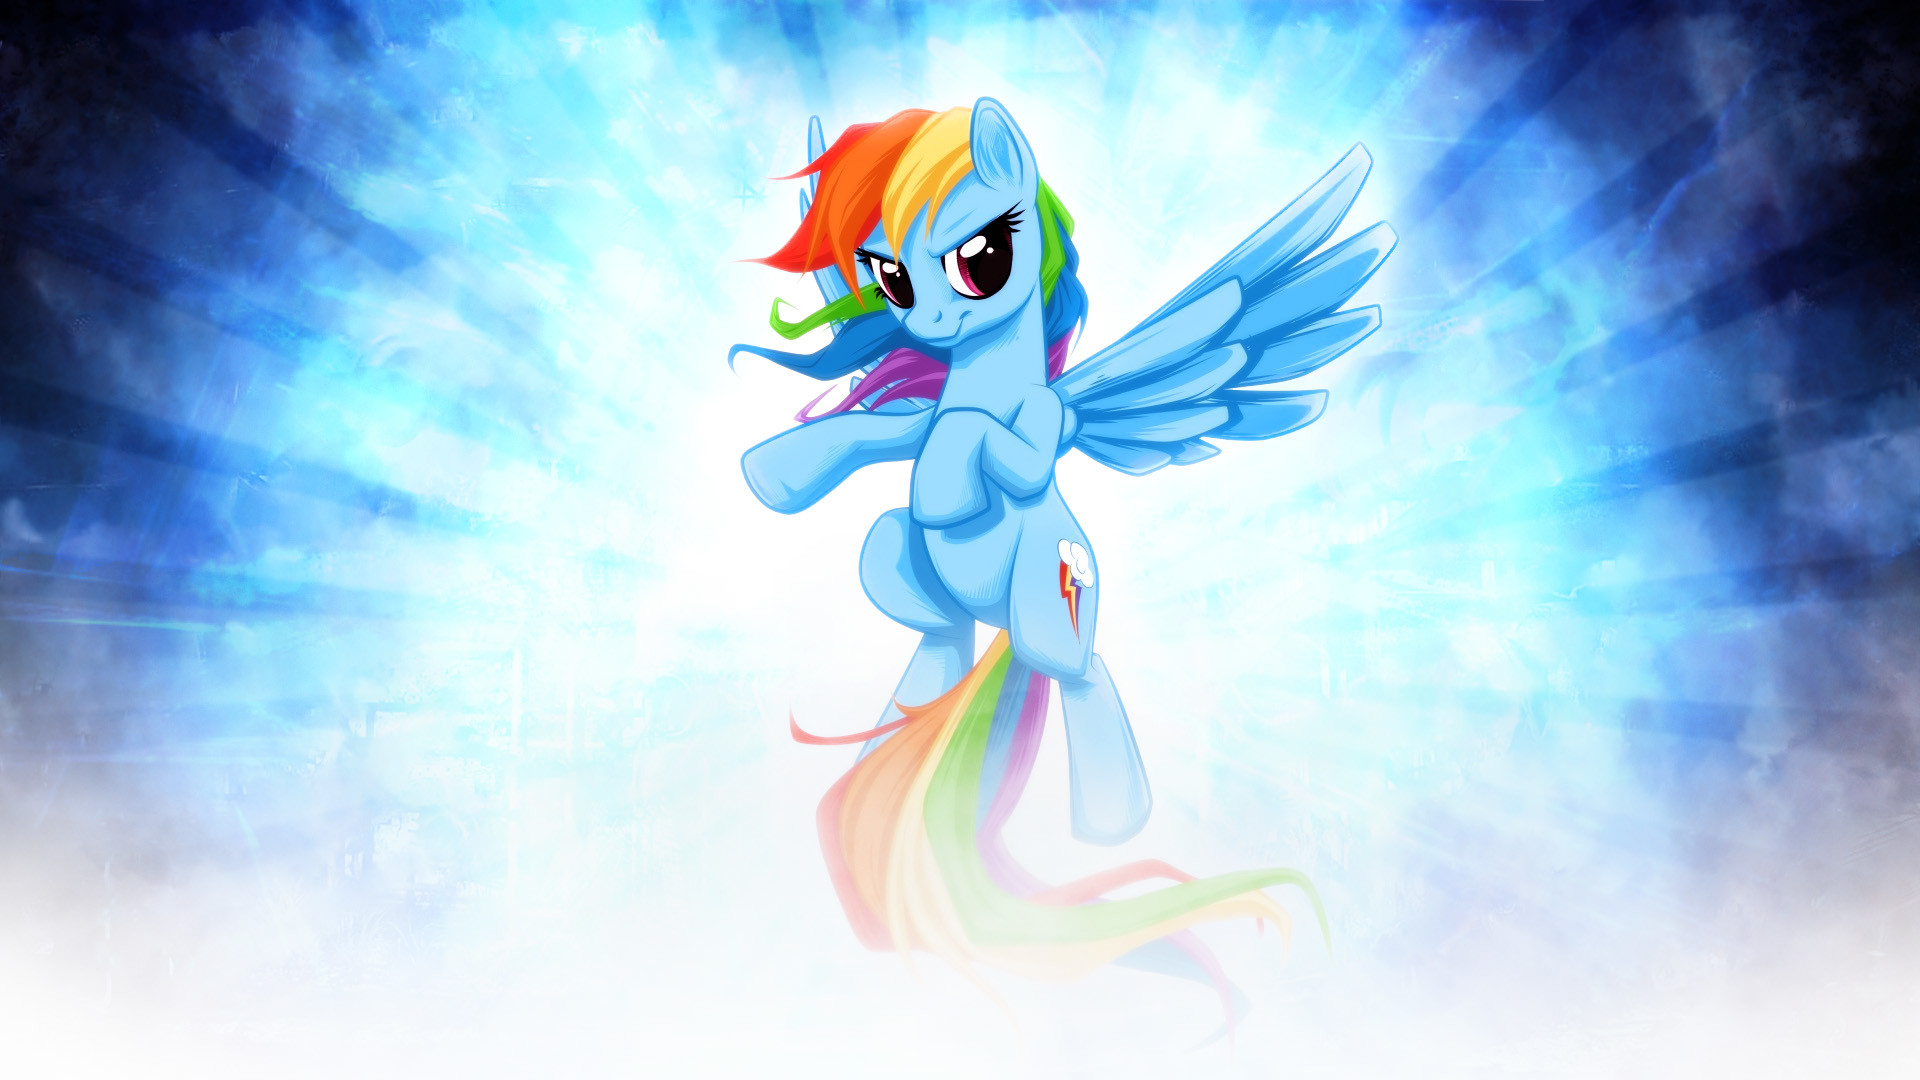 1920x1080 Page of rainbow wallpapers, photos and desktop backgrounds 1600×900 Rainbow  Dash Backgrounds (